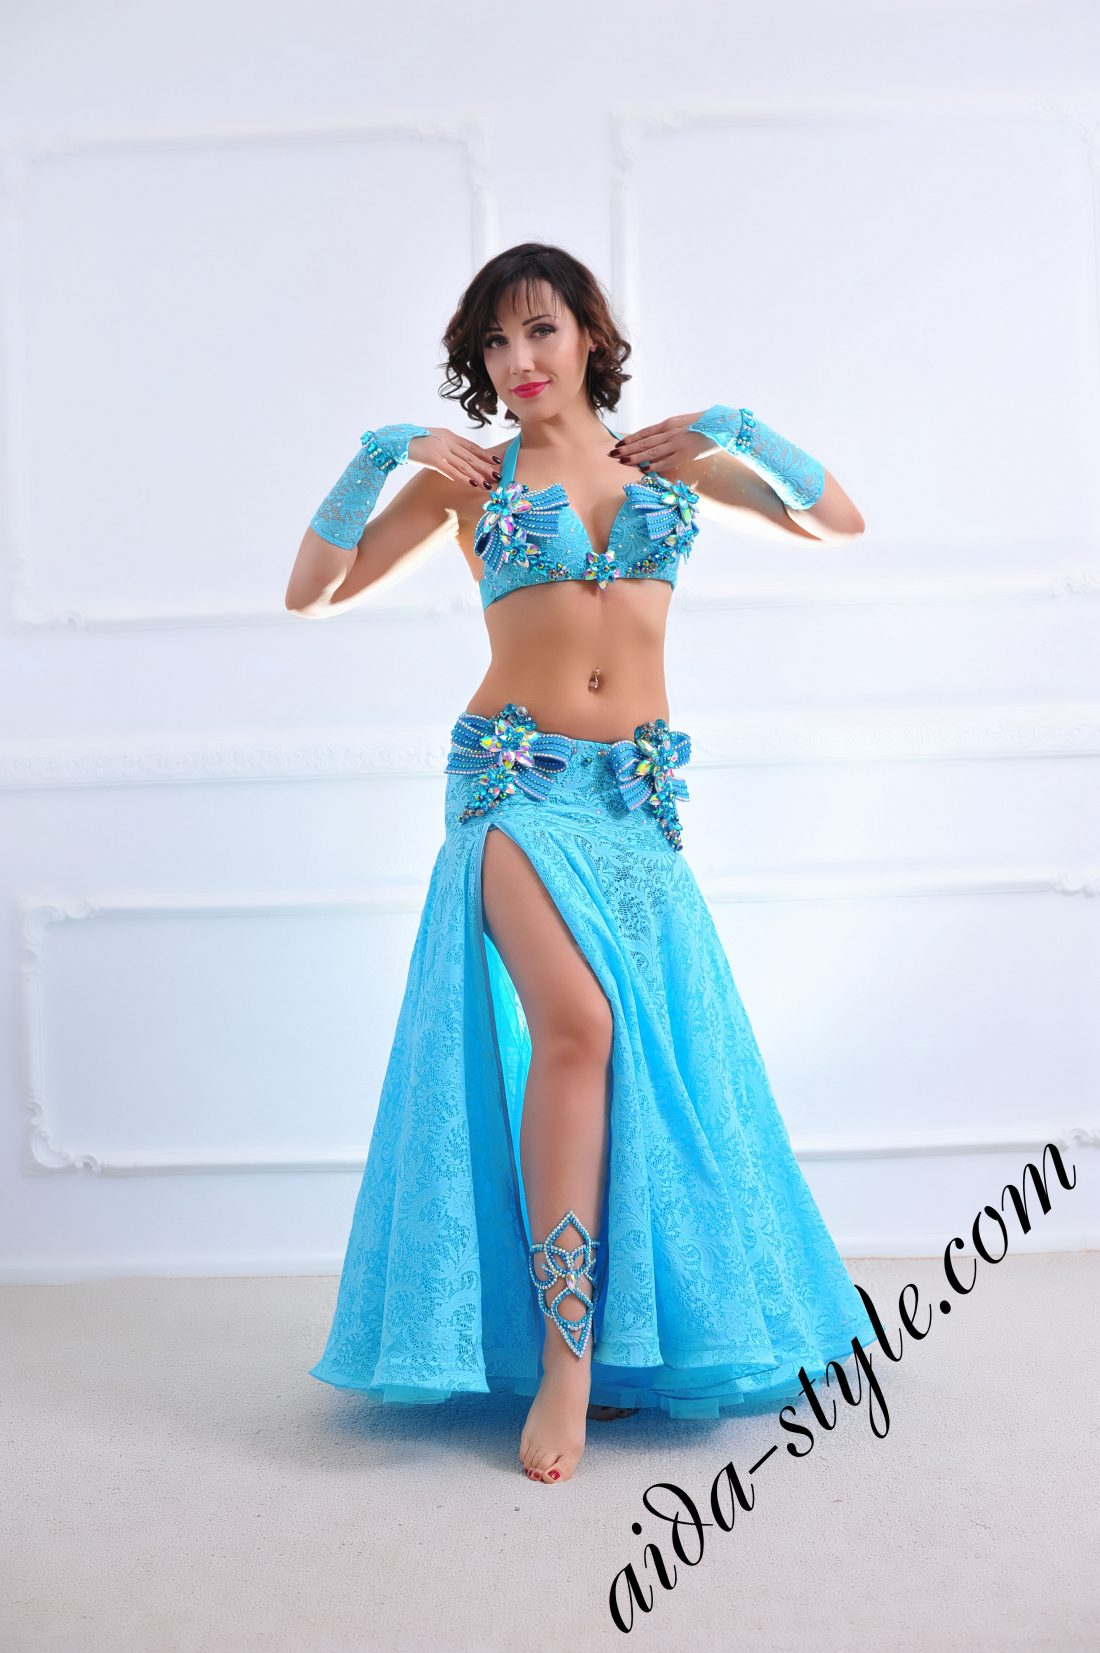 designer's belly dance costume for oriental dance by Aida Style (80) in azure blue color with wide circular skirt